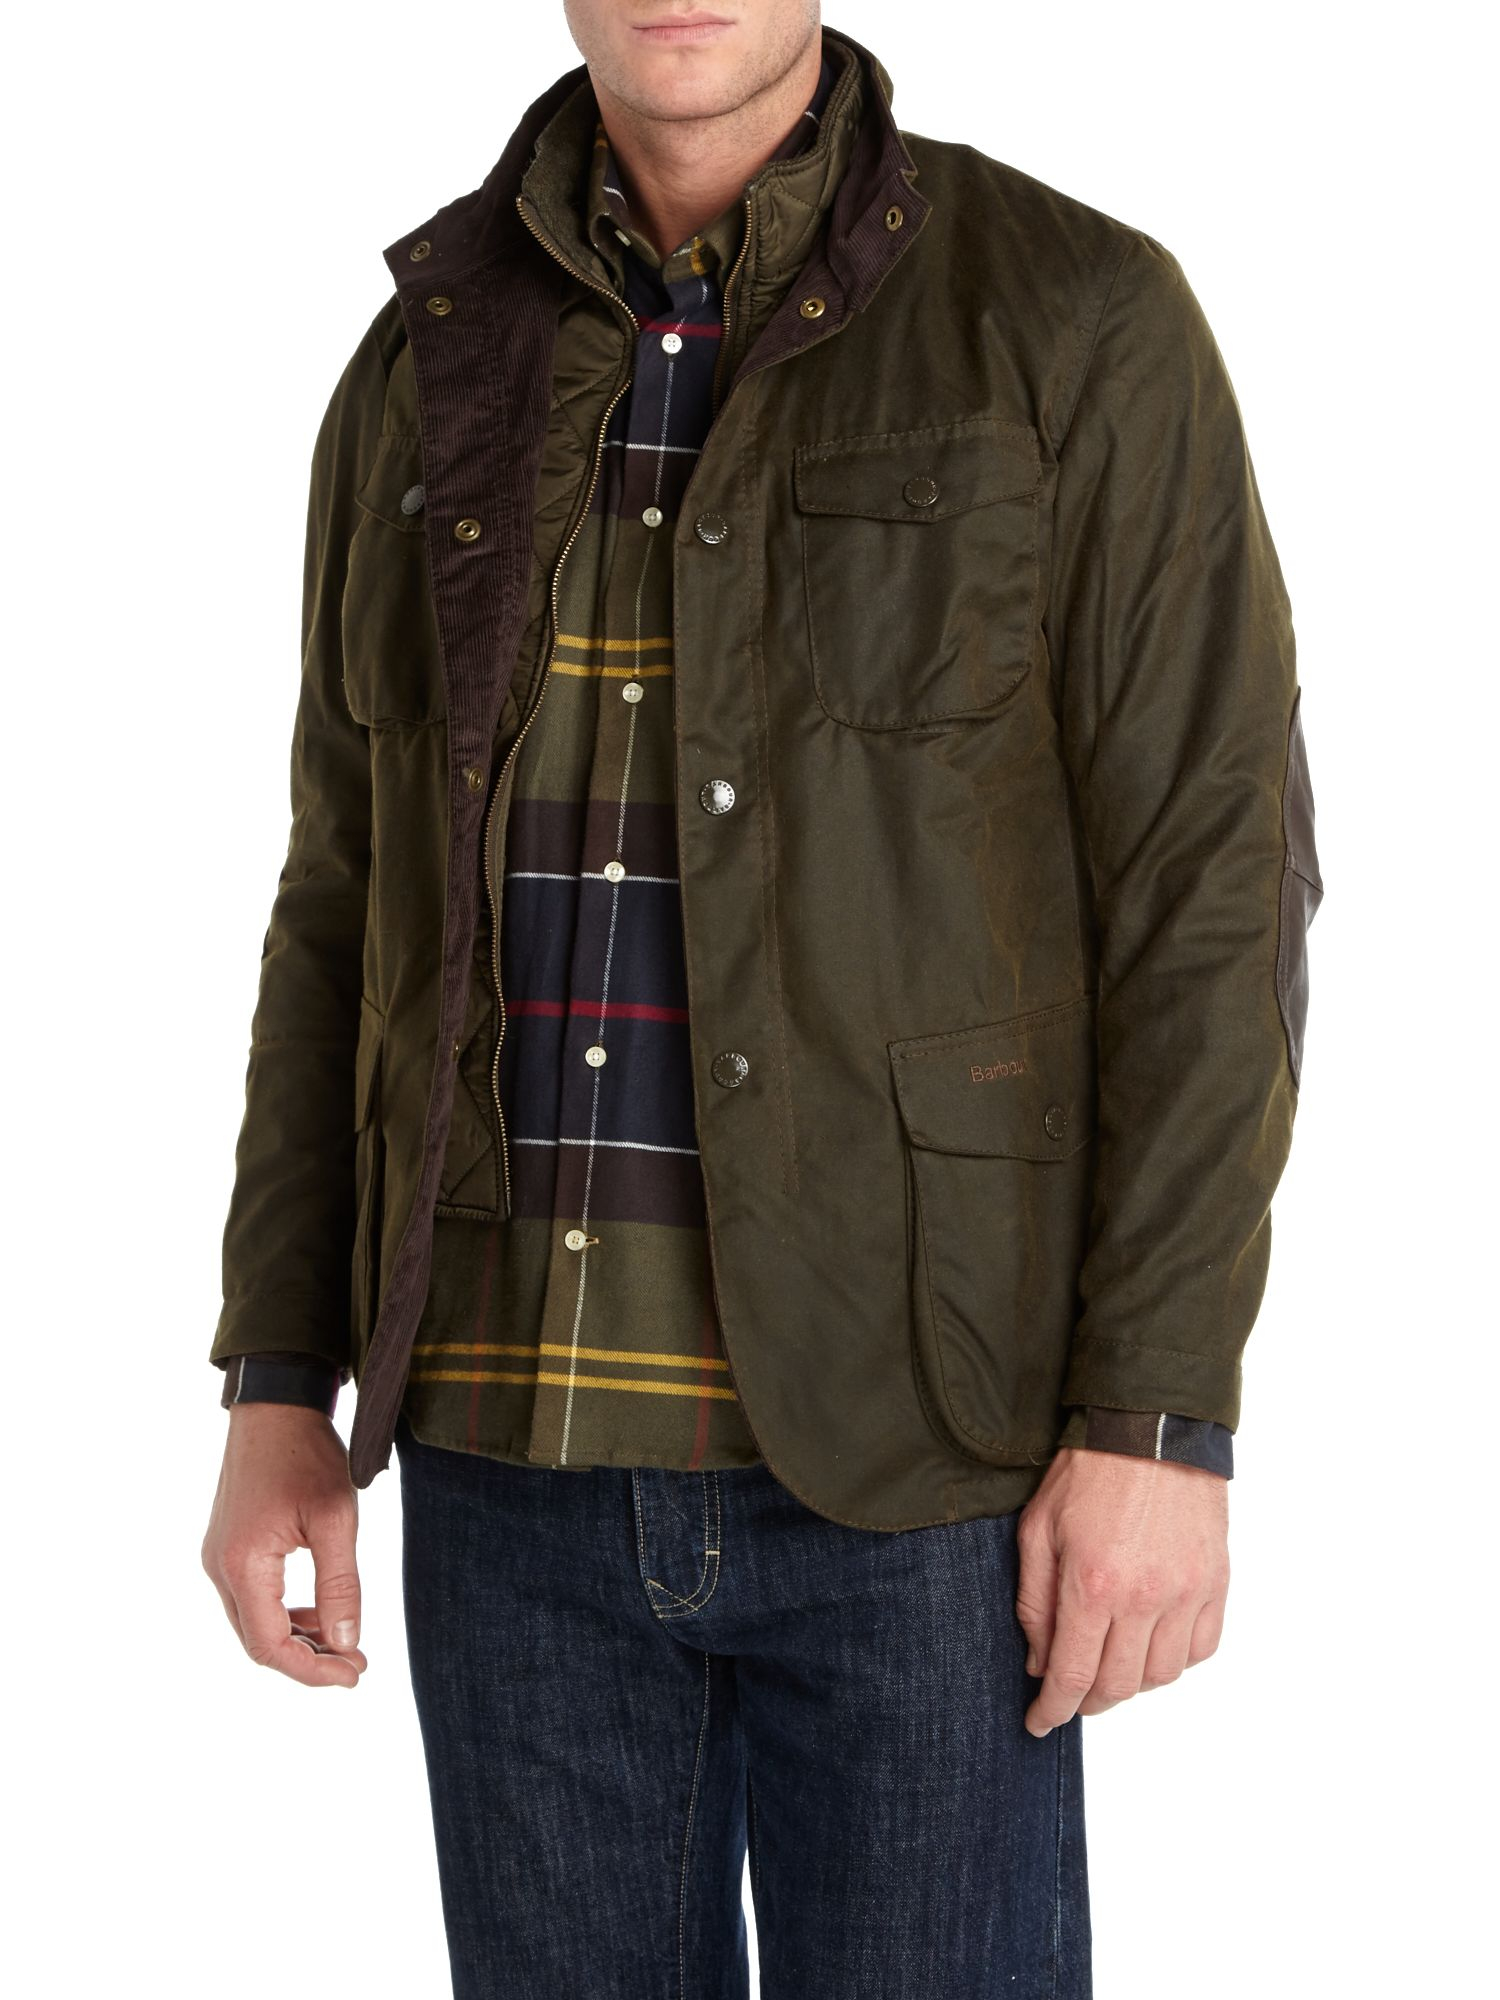 50 off barbour jacket navy 03 salary wizard comparison barbour ariel jacket barbour cheapest barbour beadnell vs classic beadnell